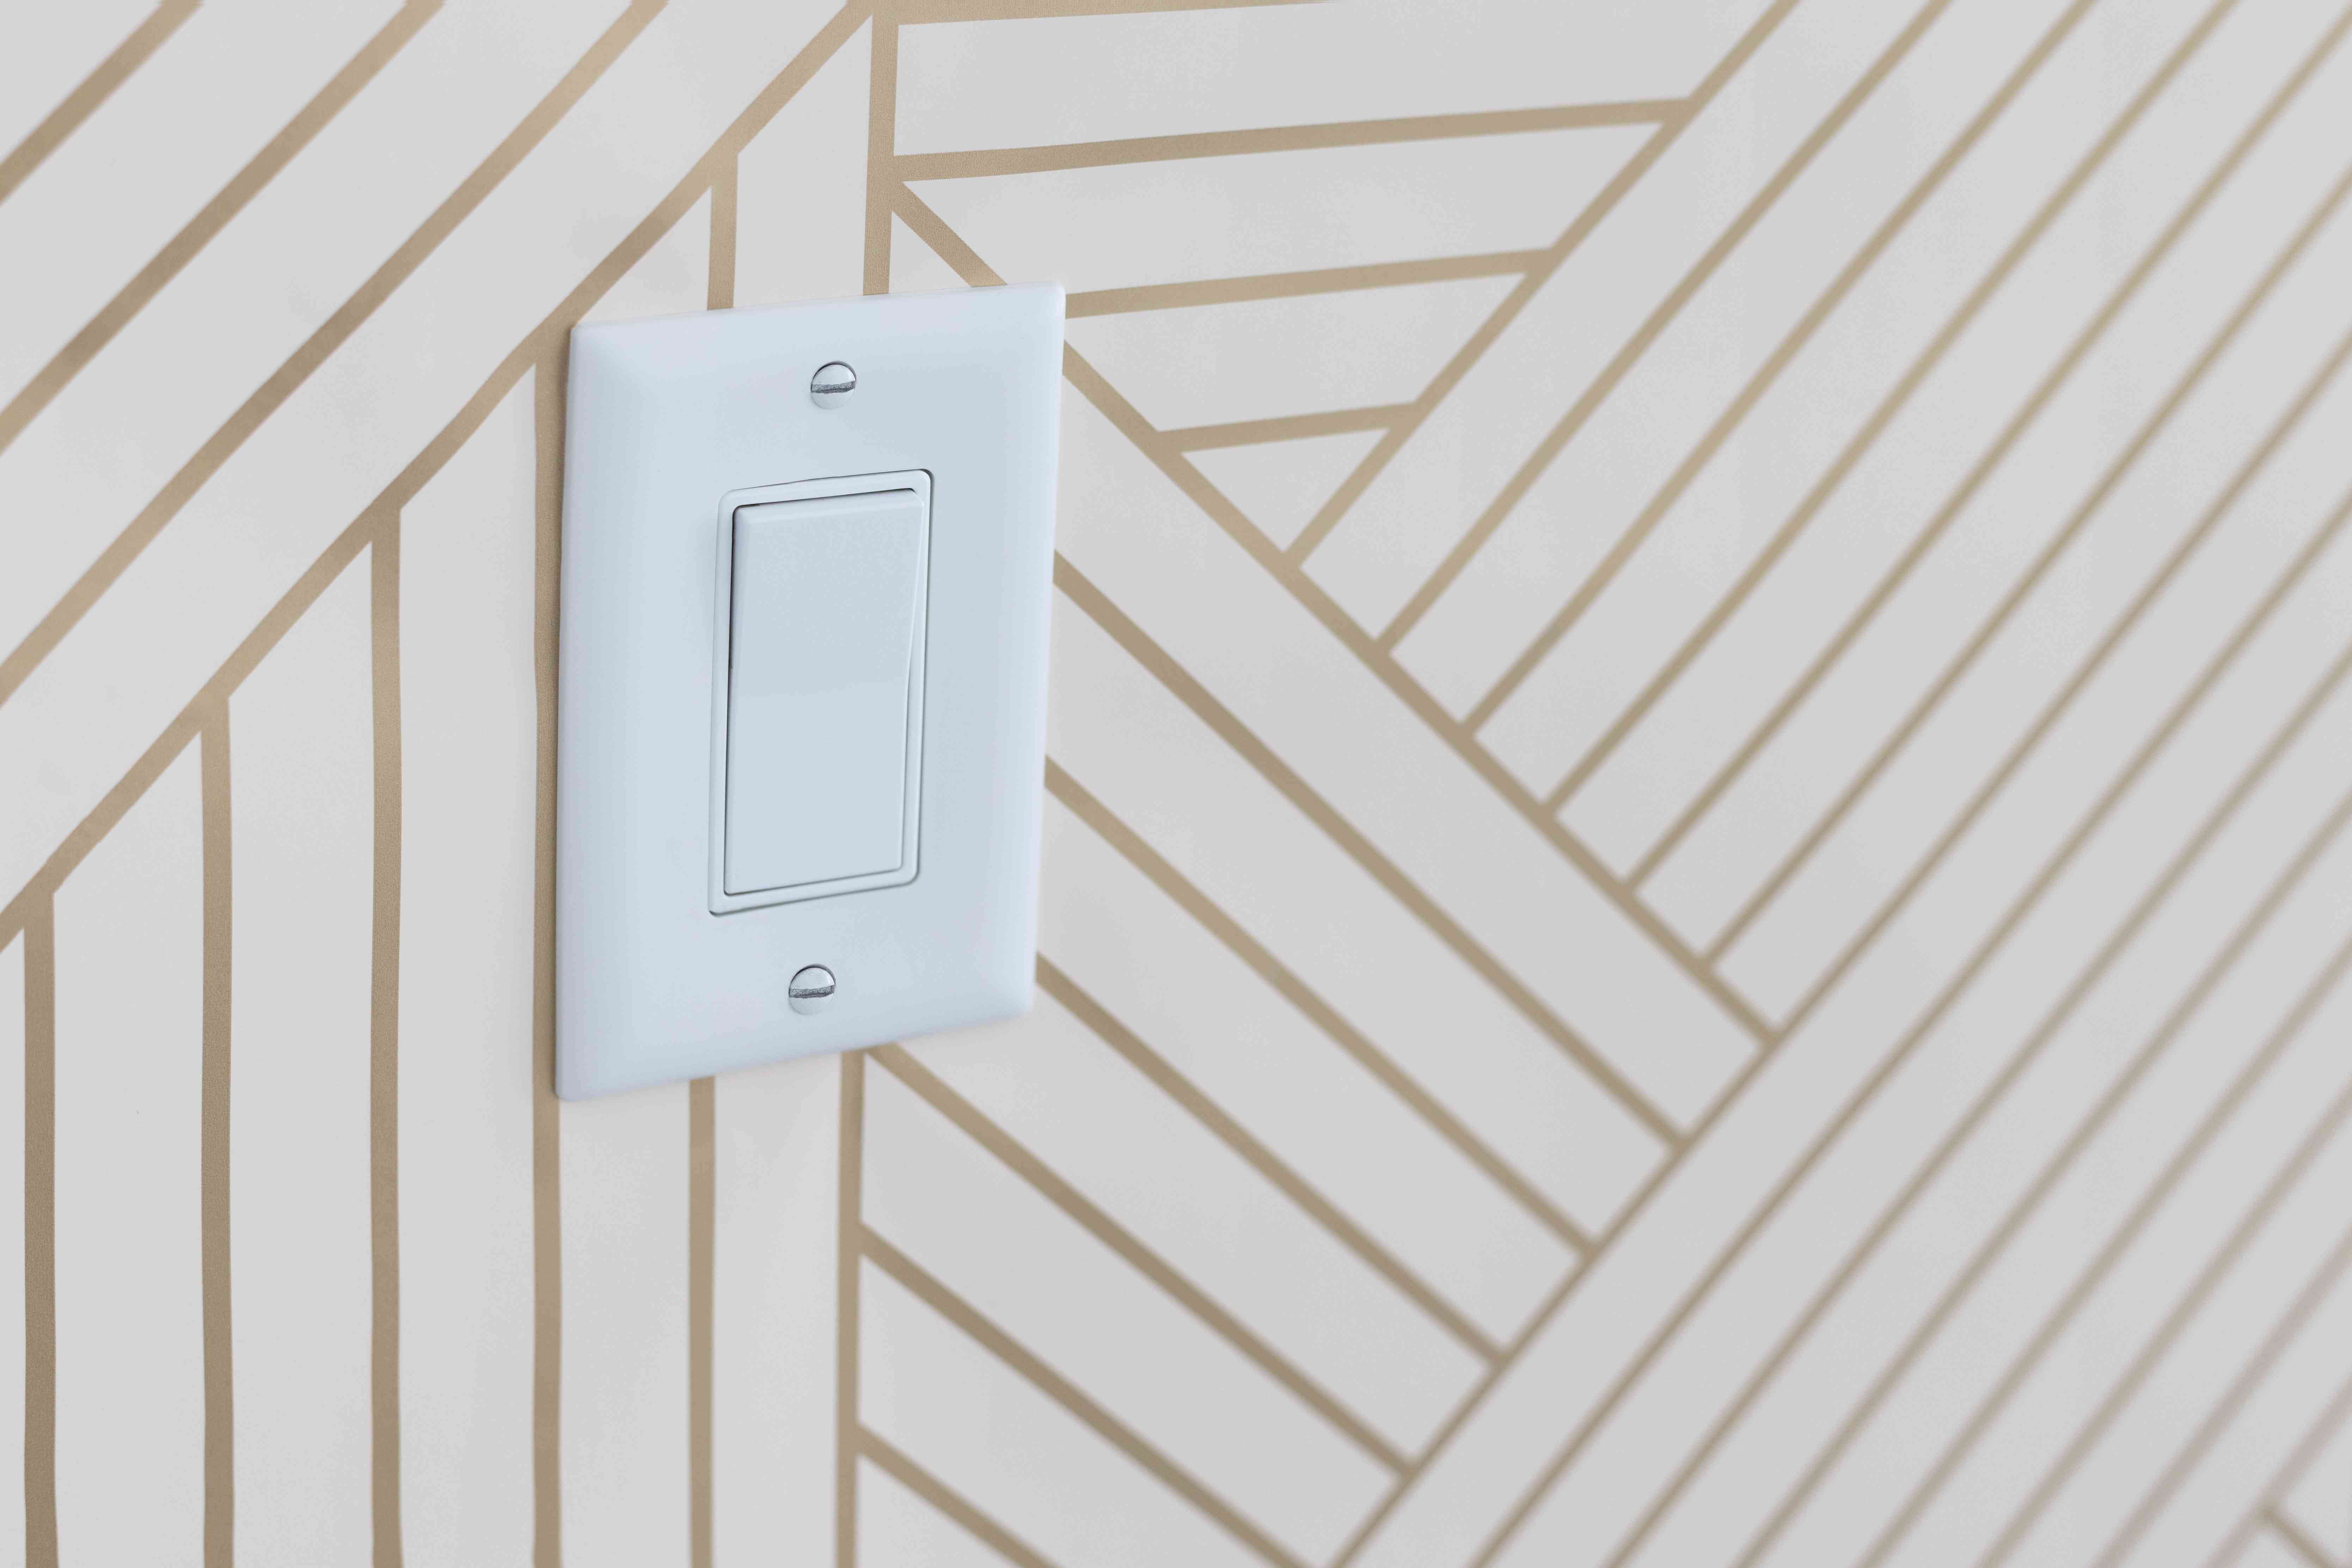 Light switch plate surrounded with white and gold striped wallpaper